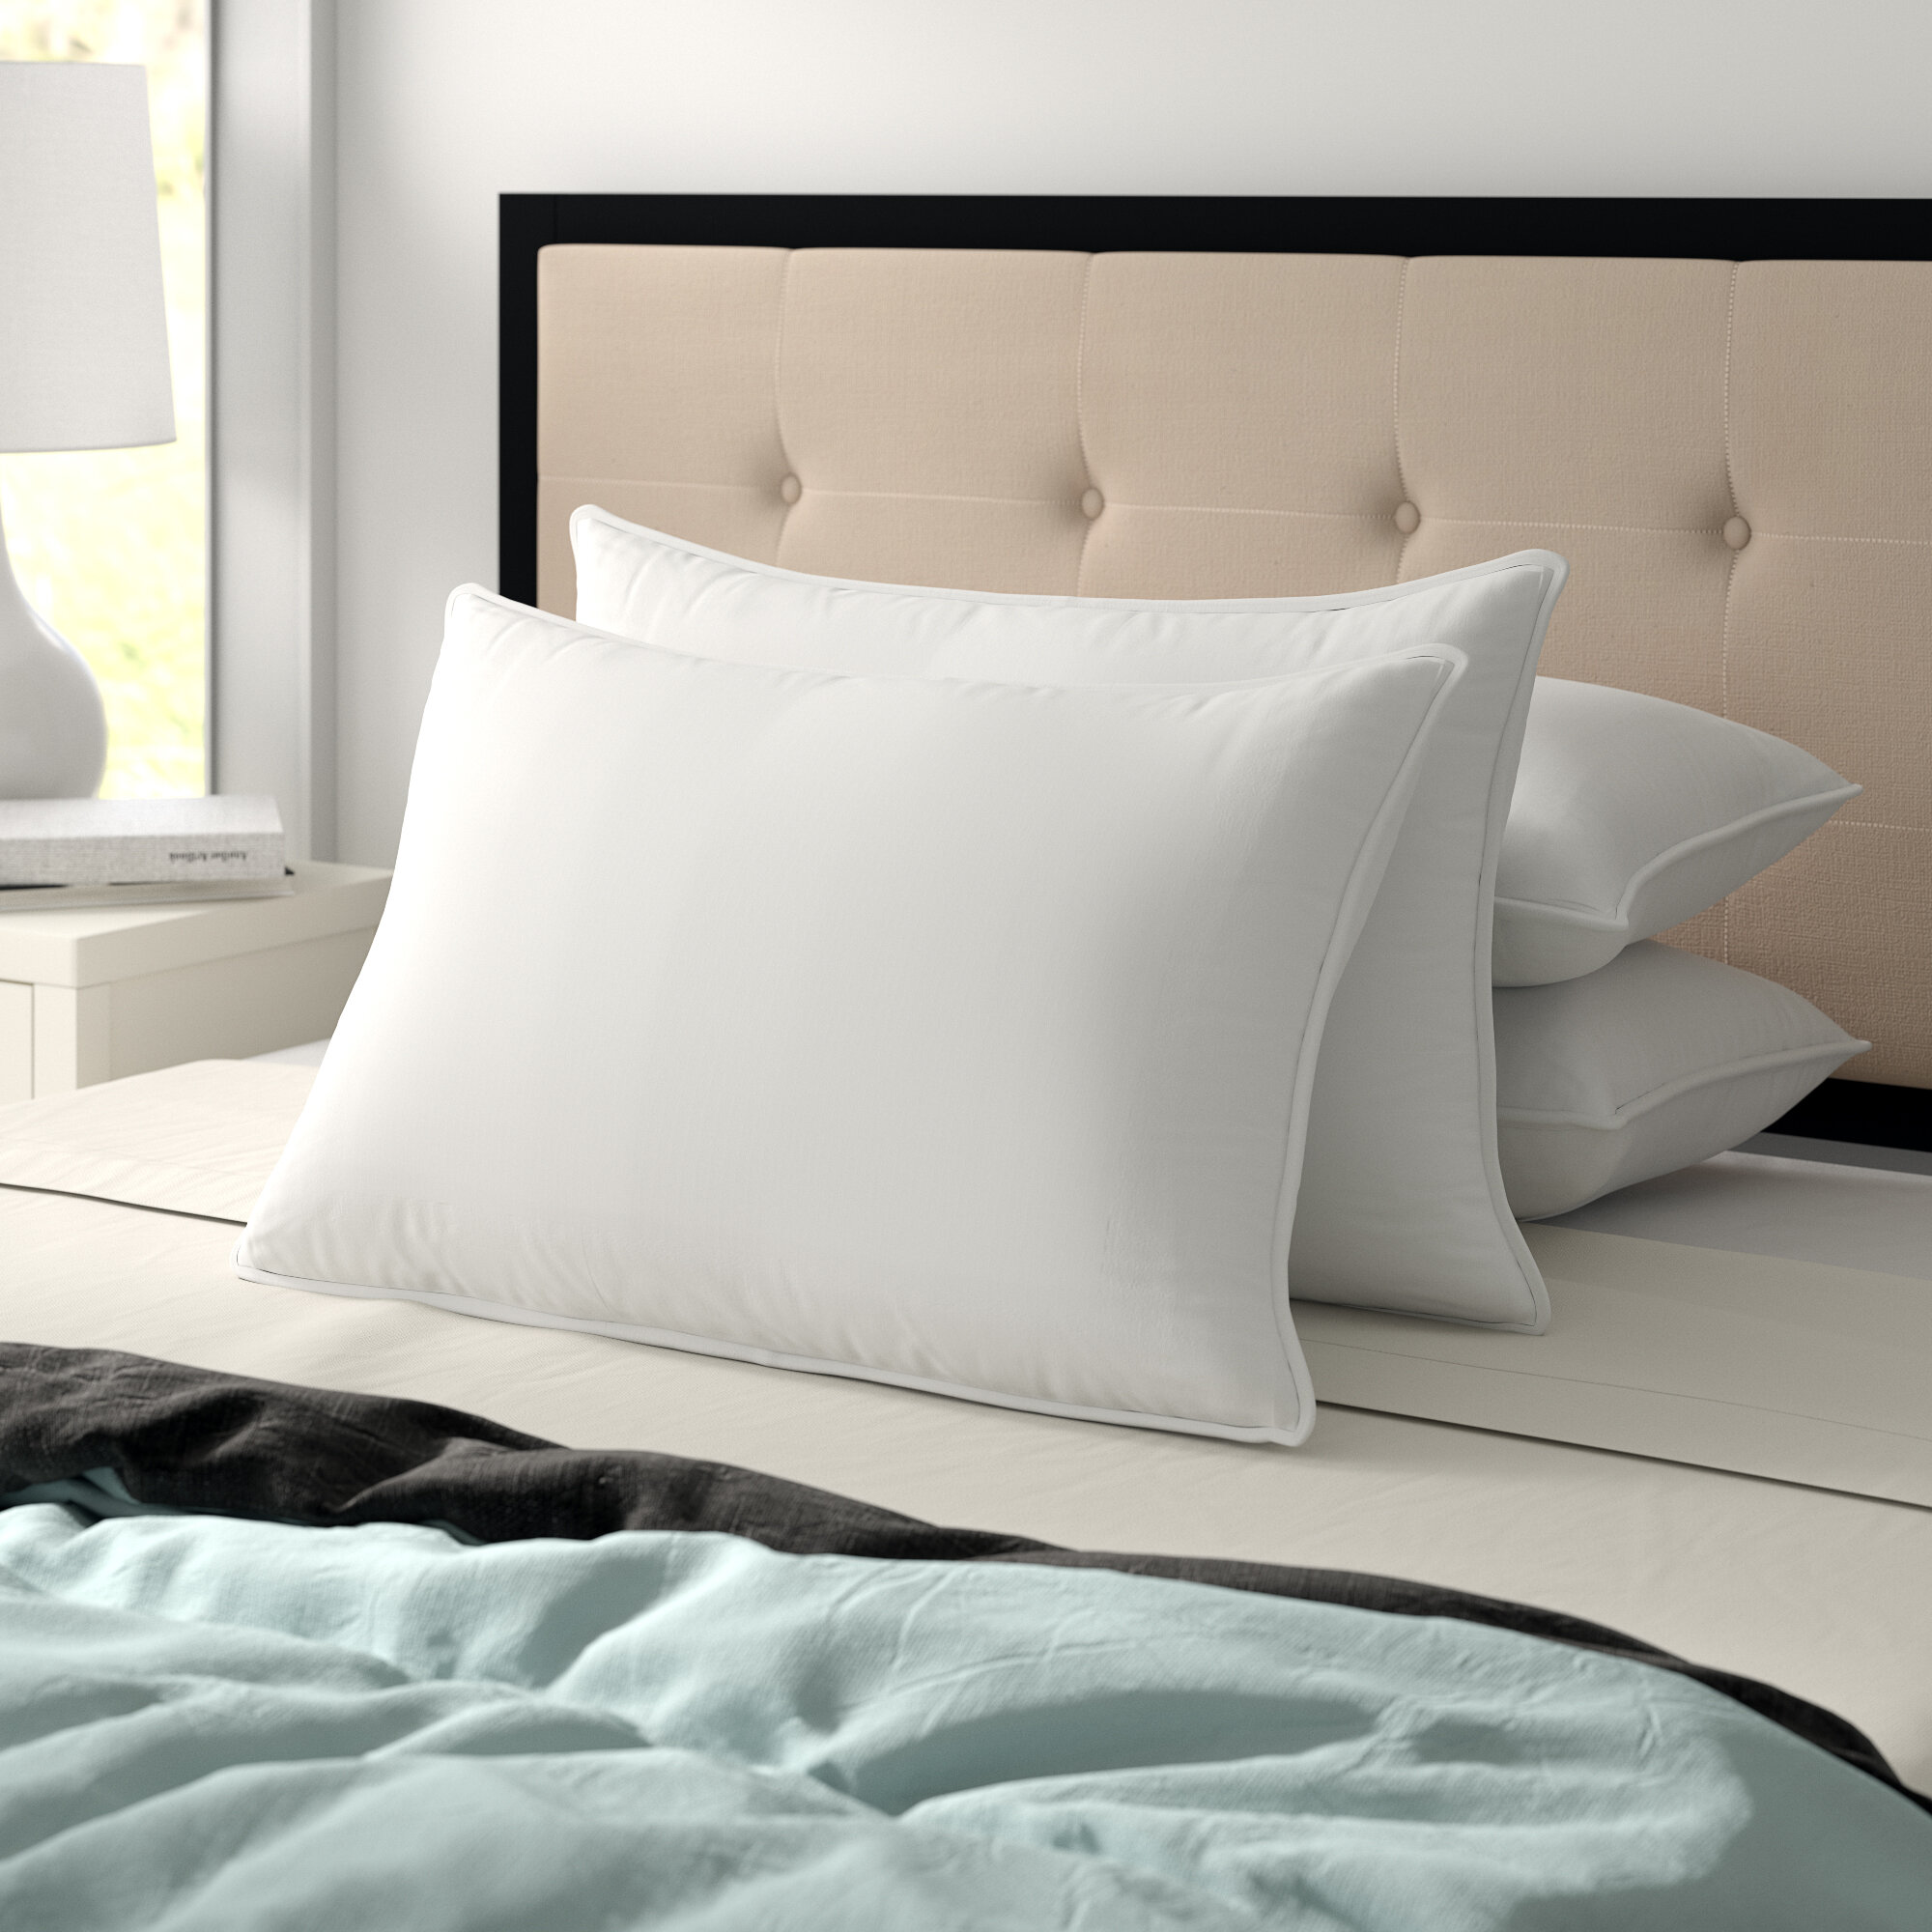 Pair of Bed Pillows Memory Foam Soap h12 Offer Made Italy